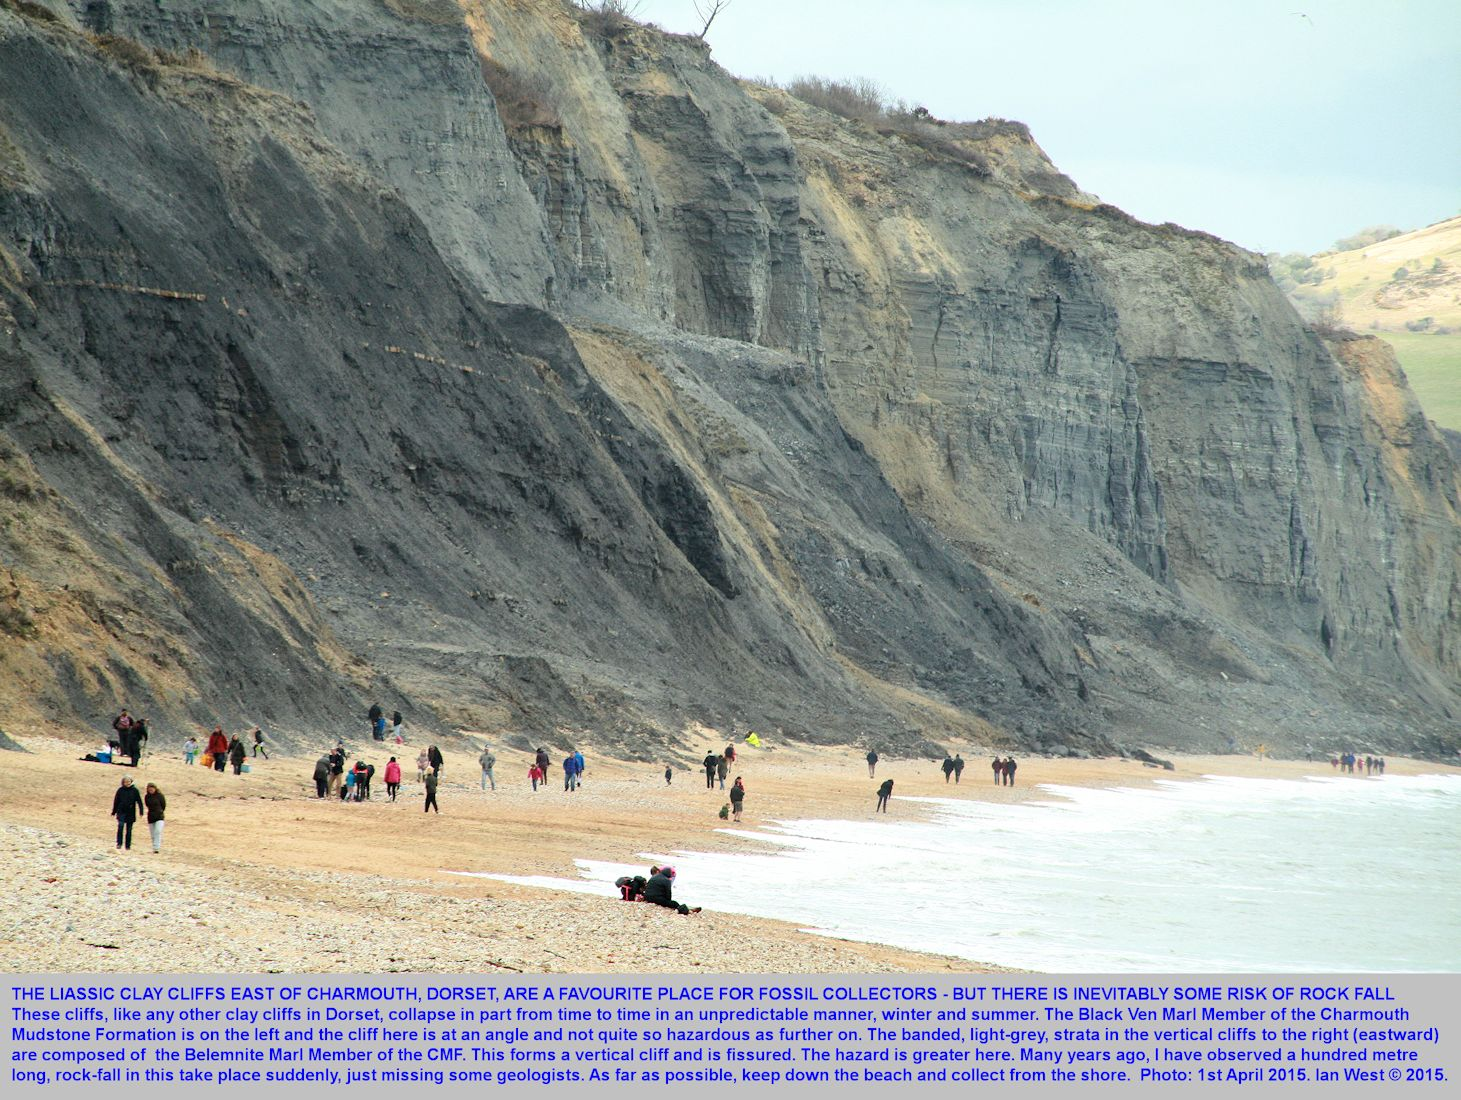 Risk of rock fall in the cliffs of Lower Lias, east of Charmouth, Dorset, photograph - 1st April 2015